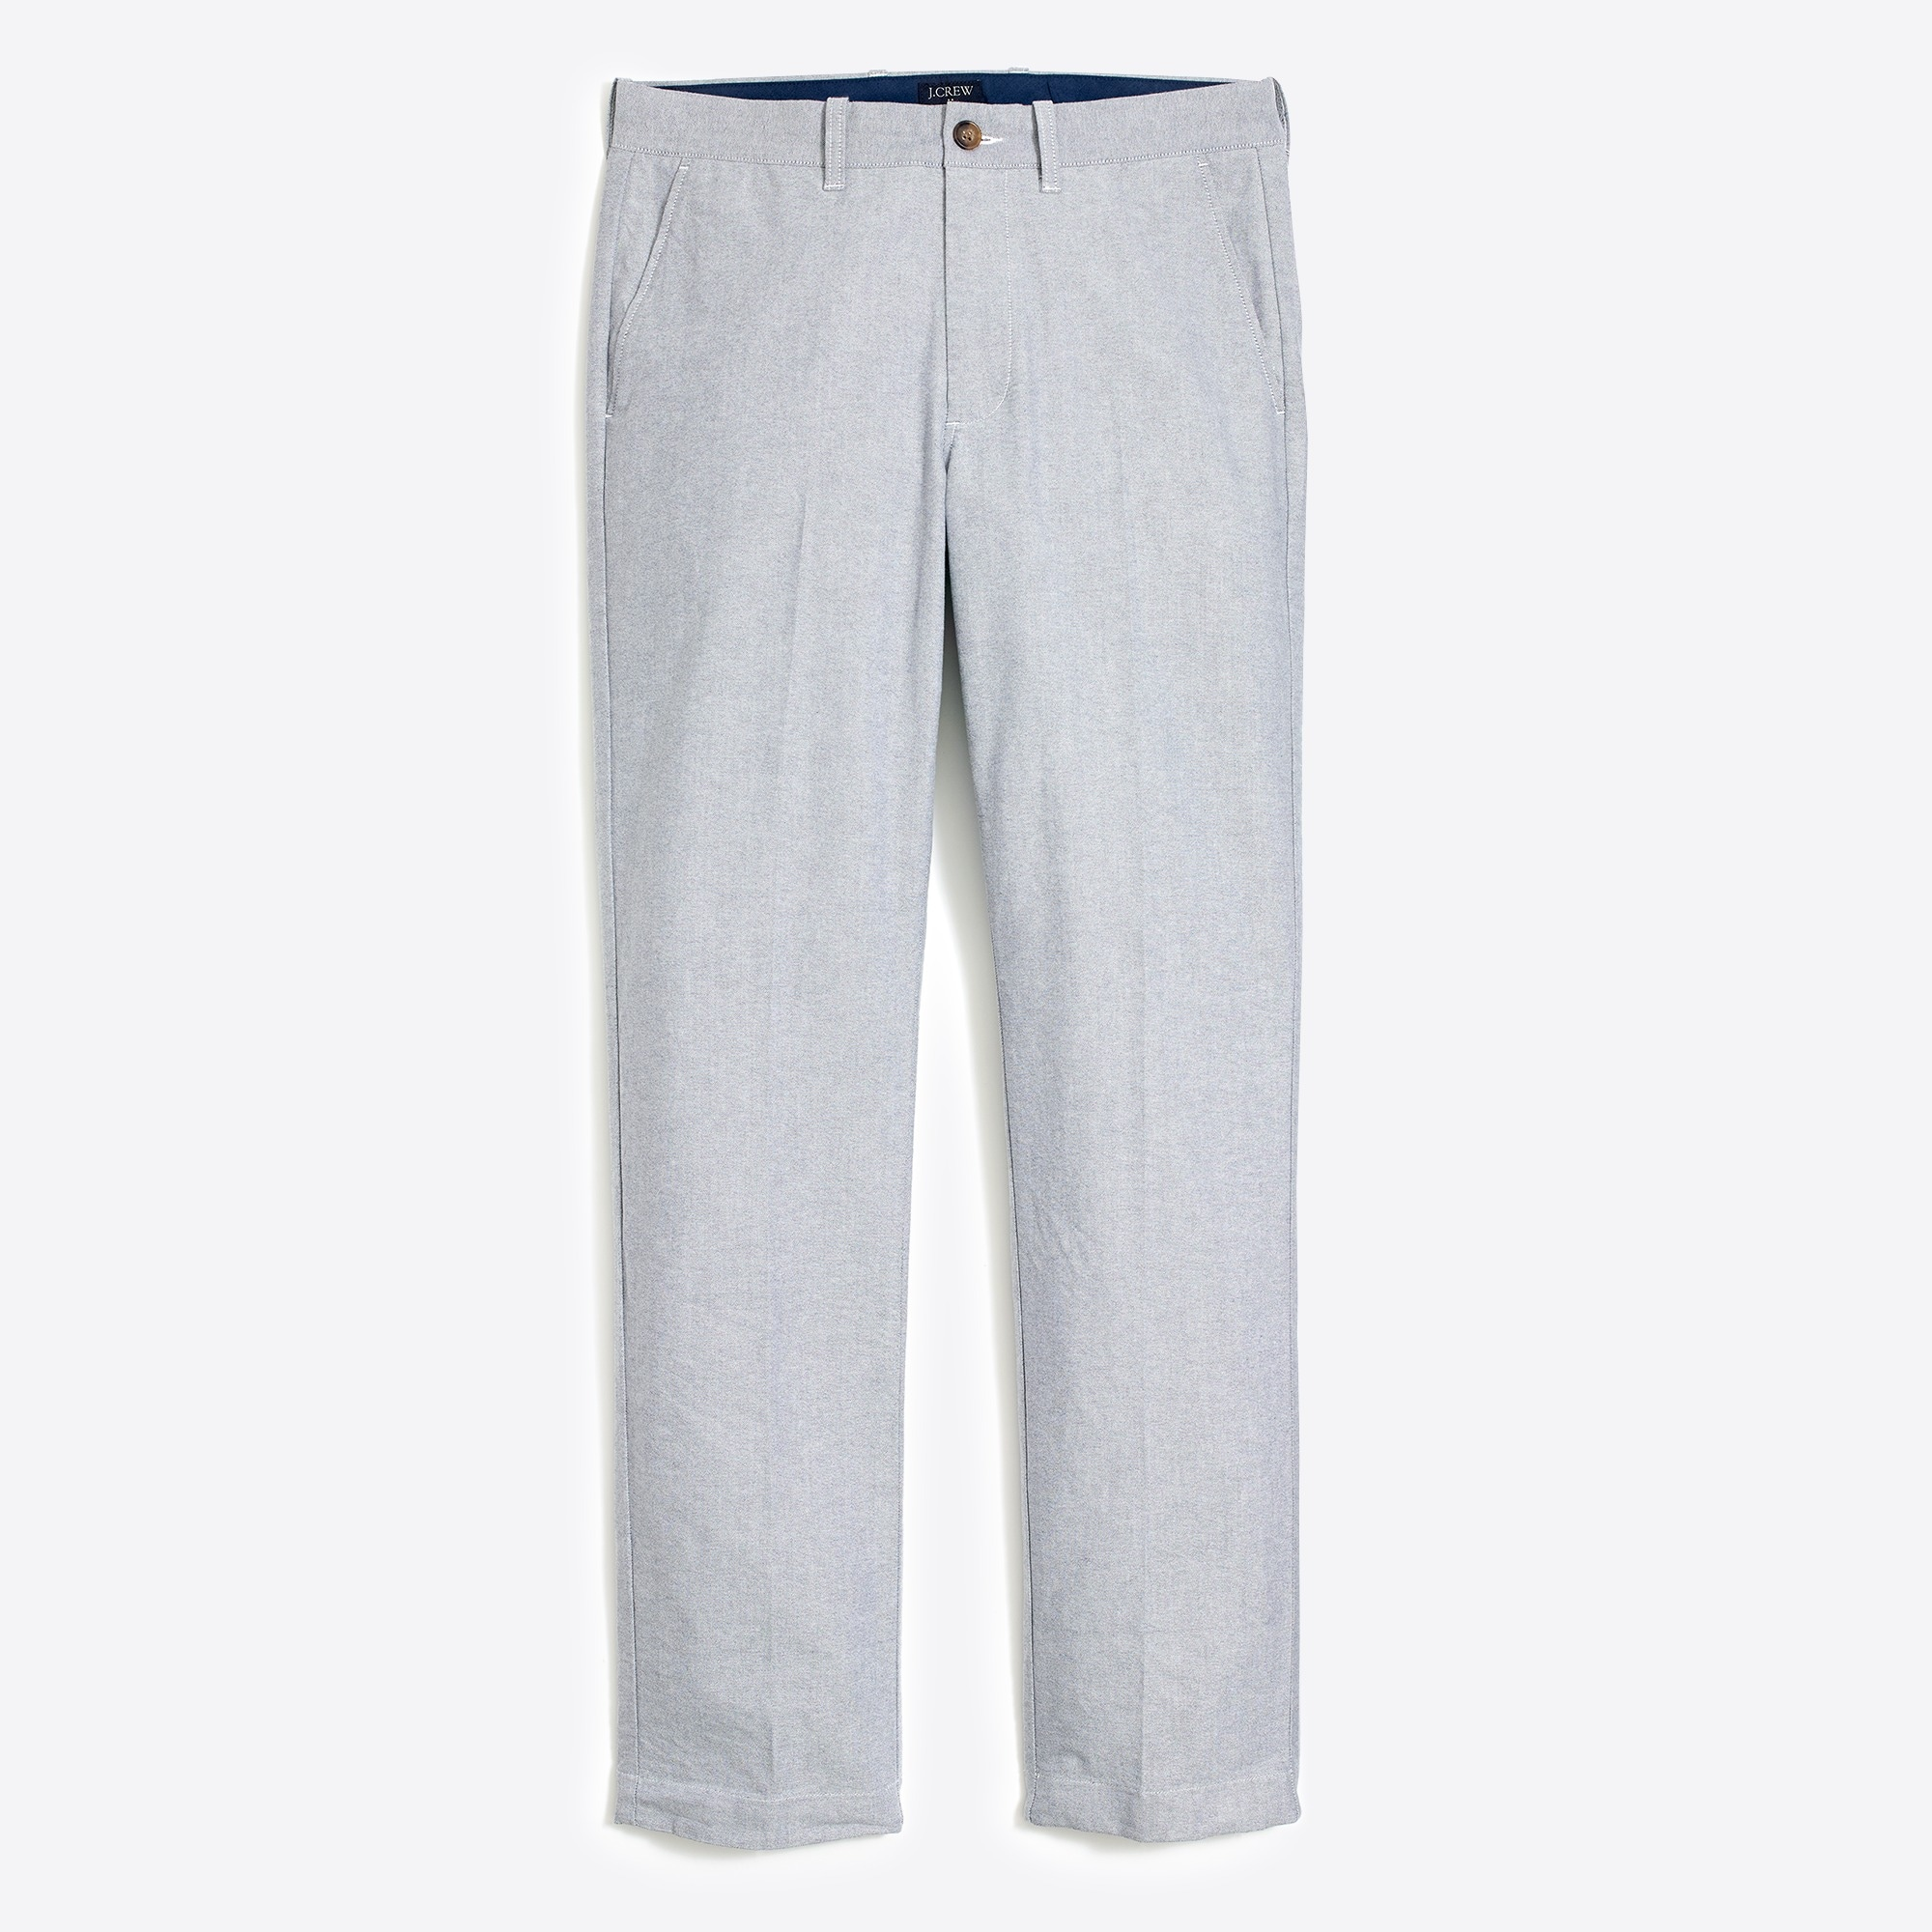 J.Crew Mercantile Sutton straight-fit pant in Oxford cloth men pants c